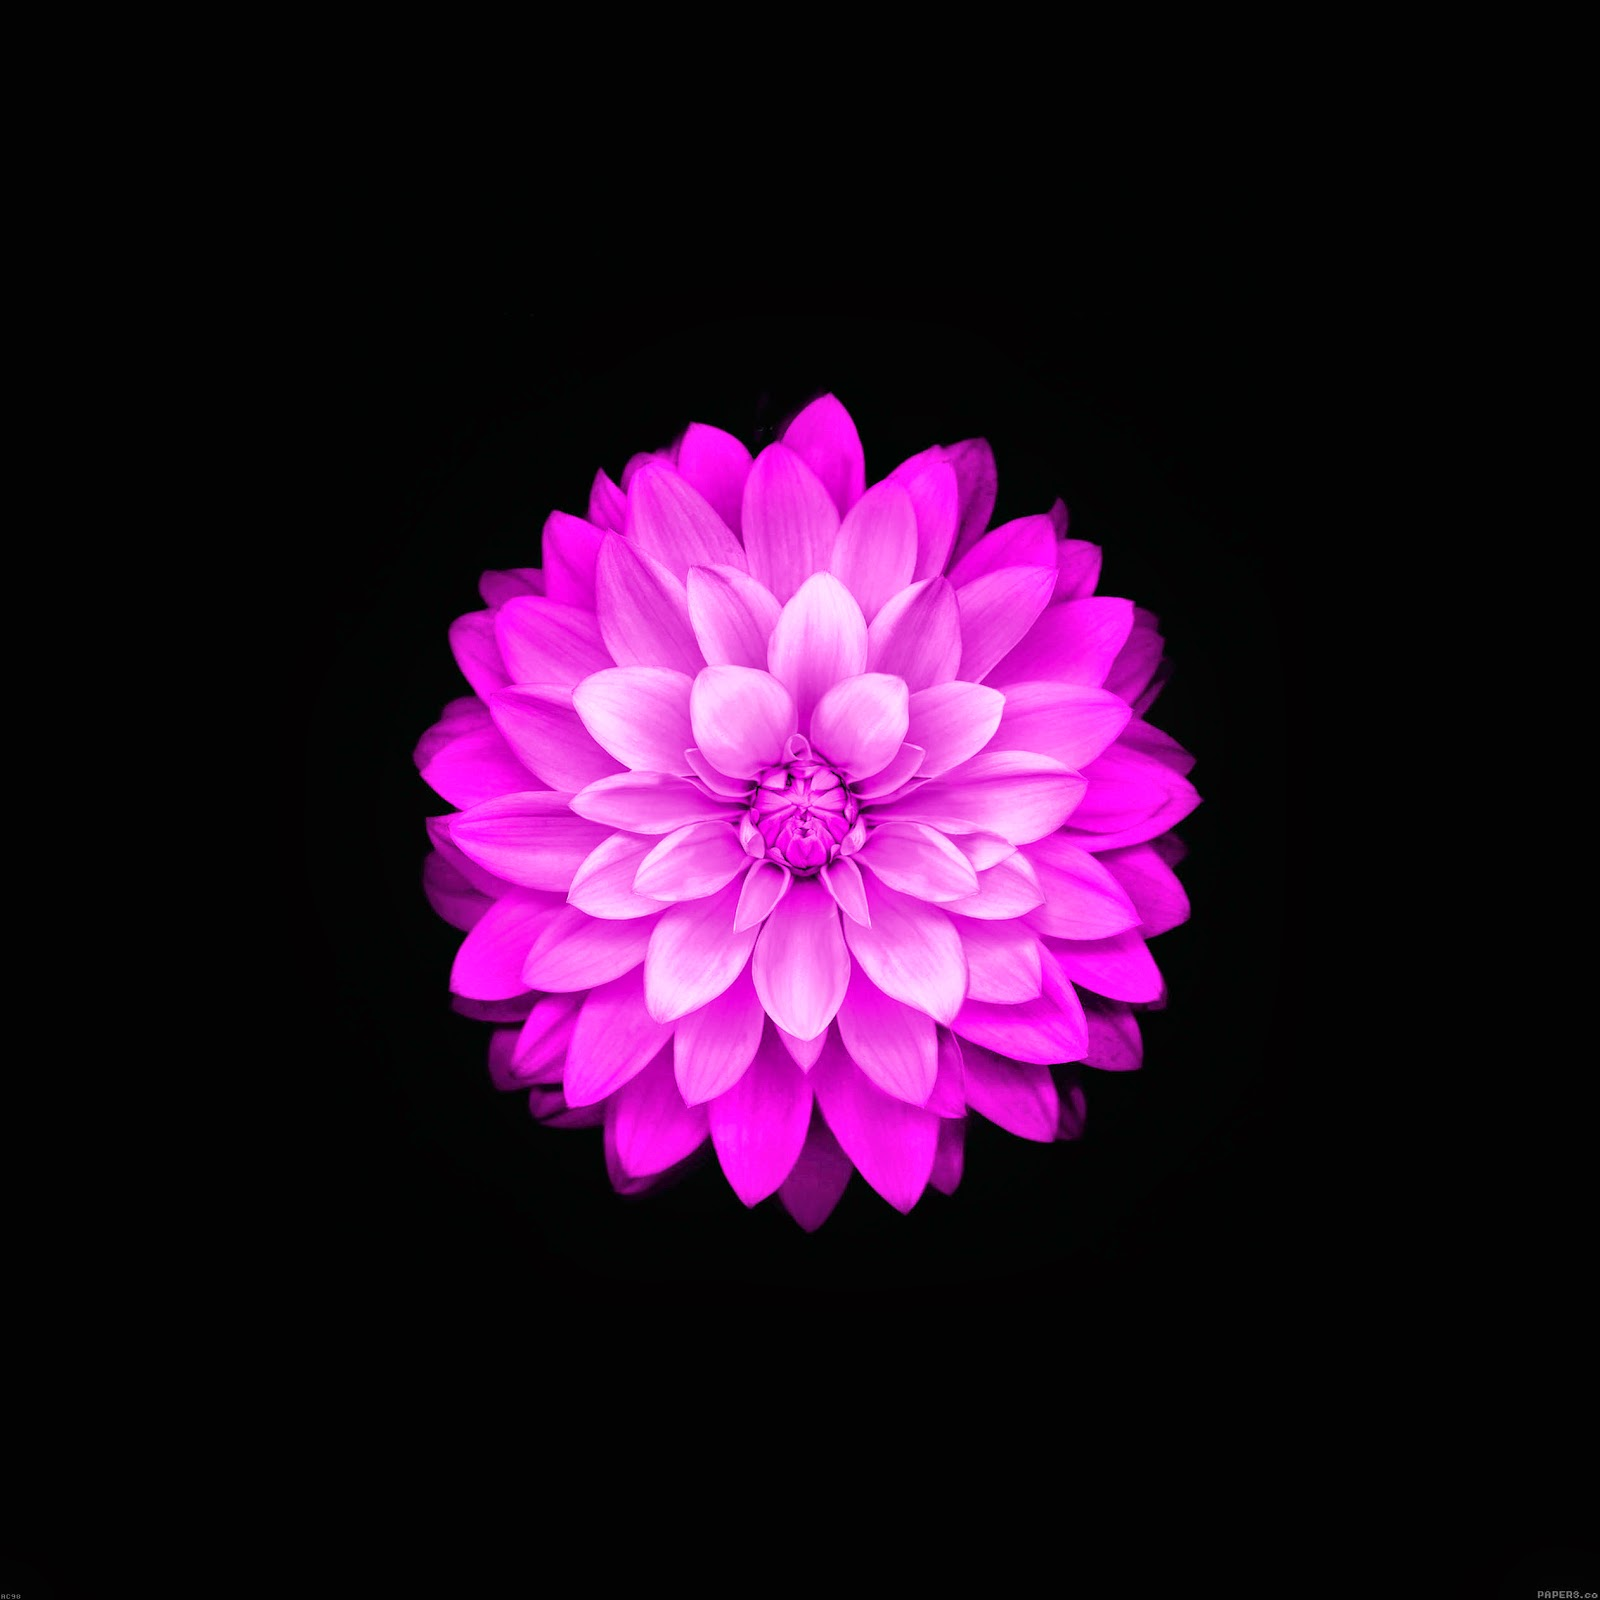 IPhone 6 Plus Flower Wallpaper